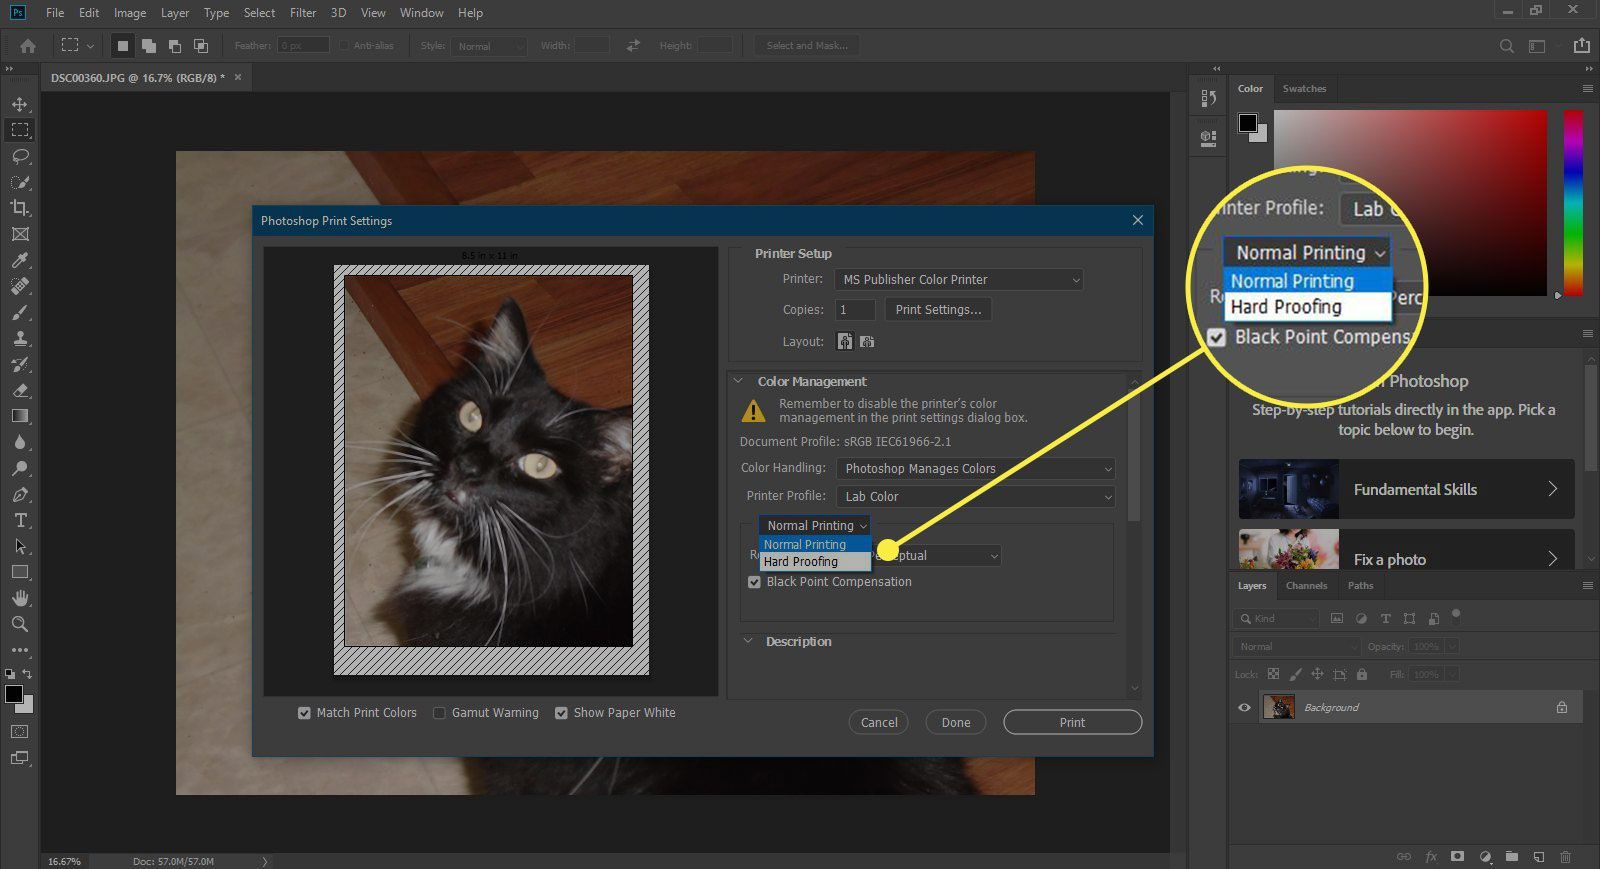 A screenshot of Photoshop's Print window with the Proofing options highlighted